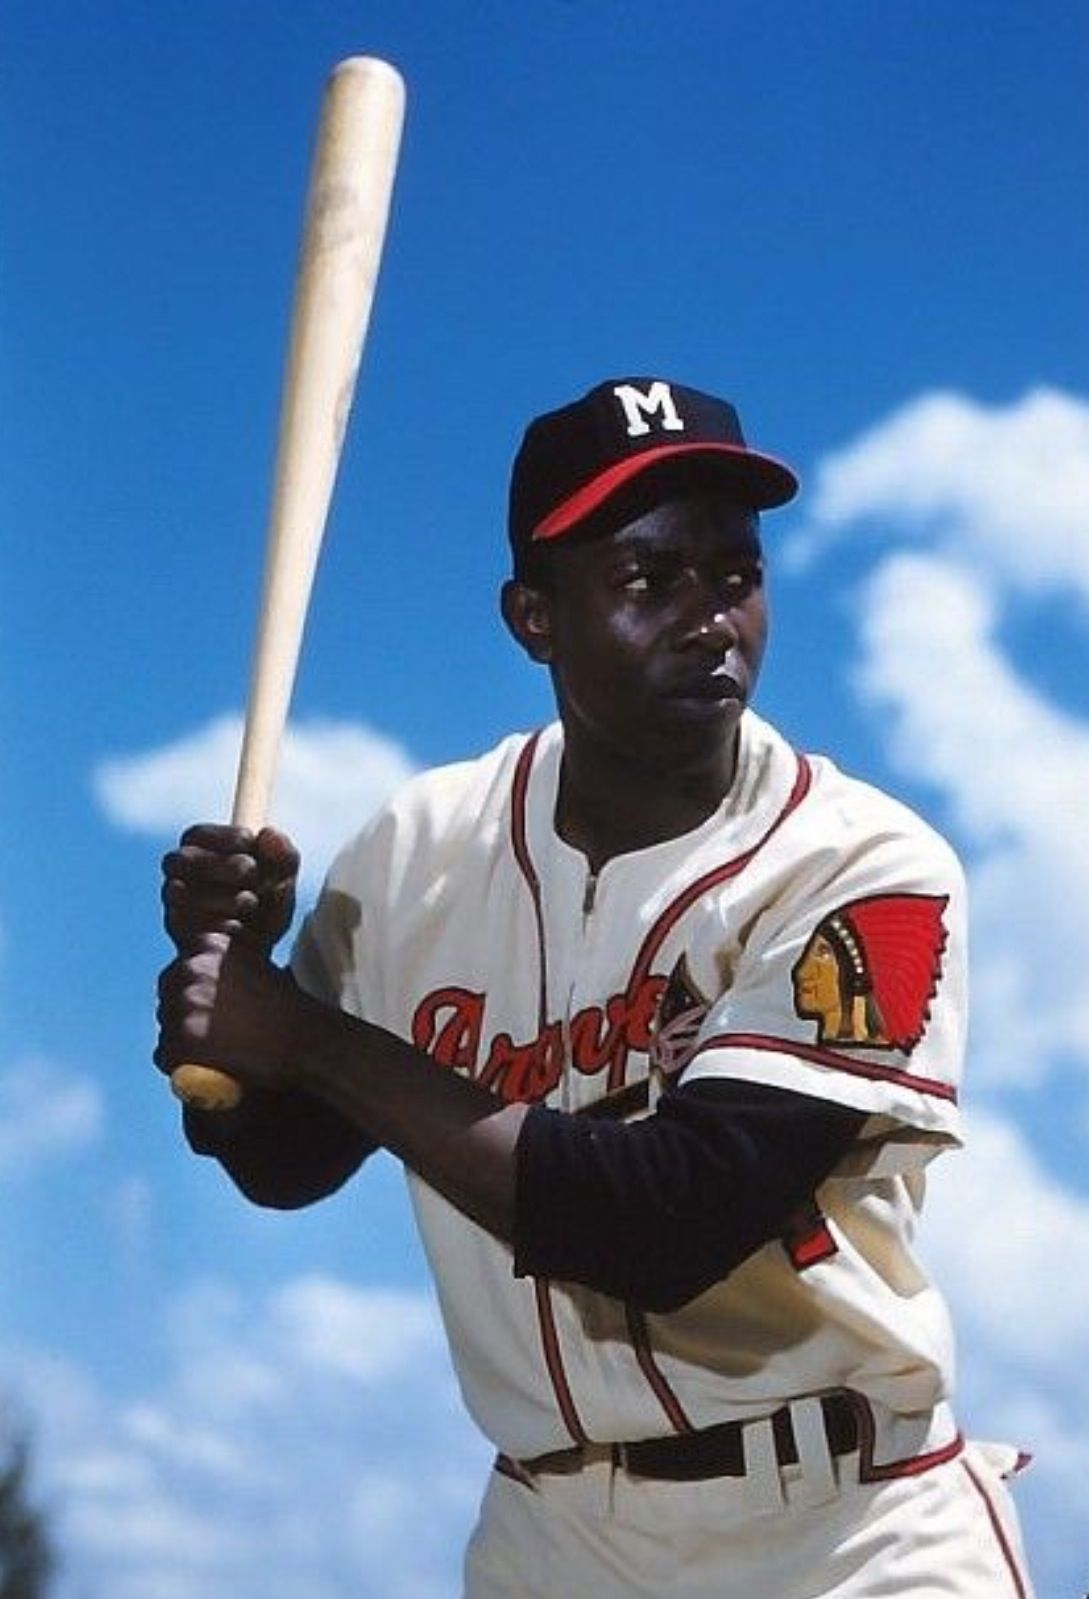 Hank Aaron, back when he was with the Milwaukee Braves.